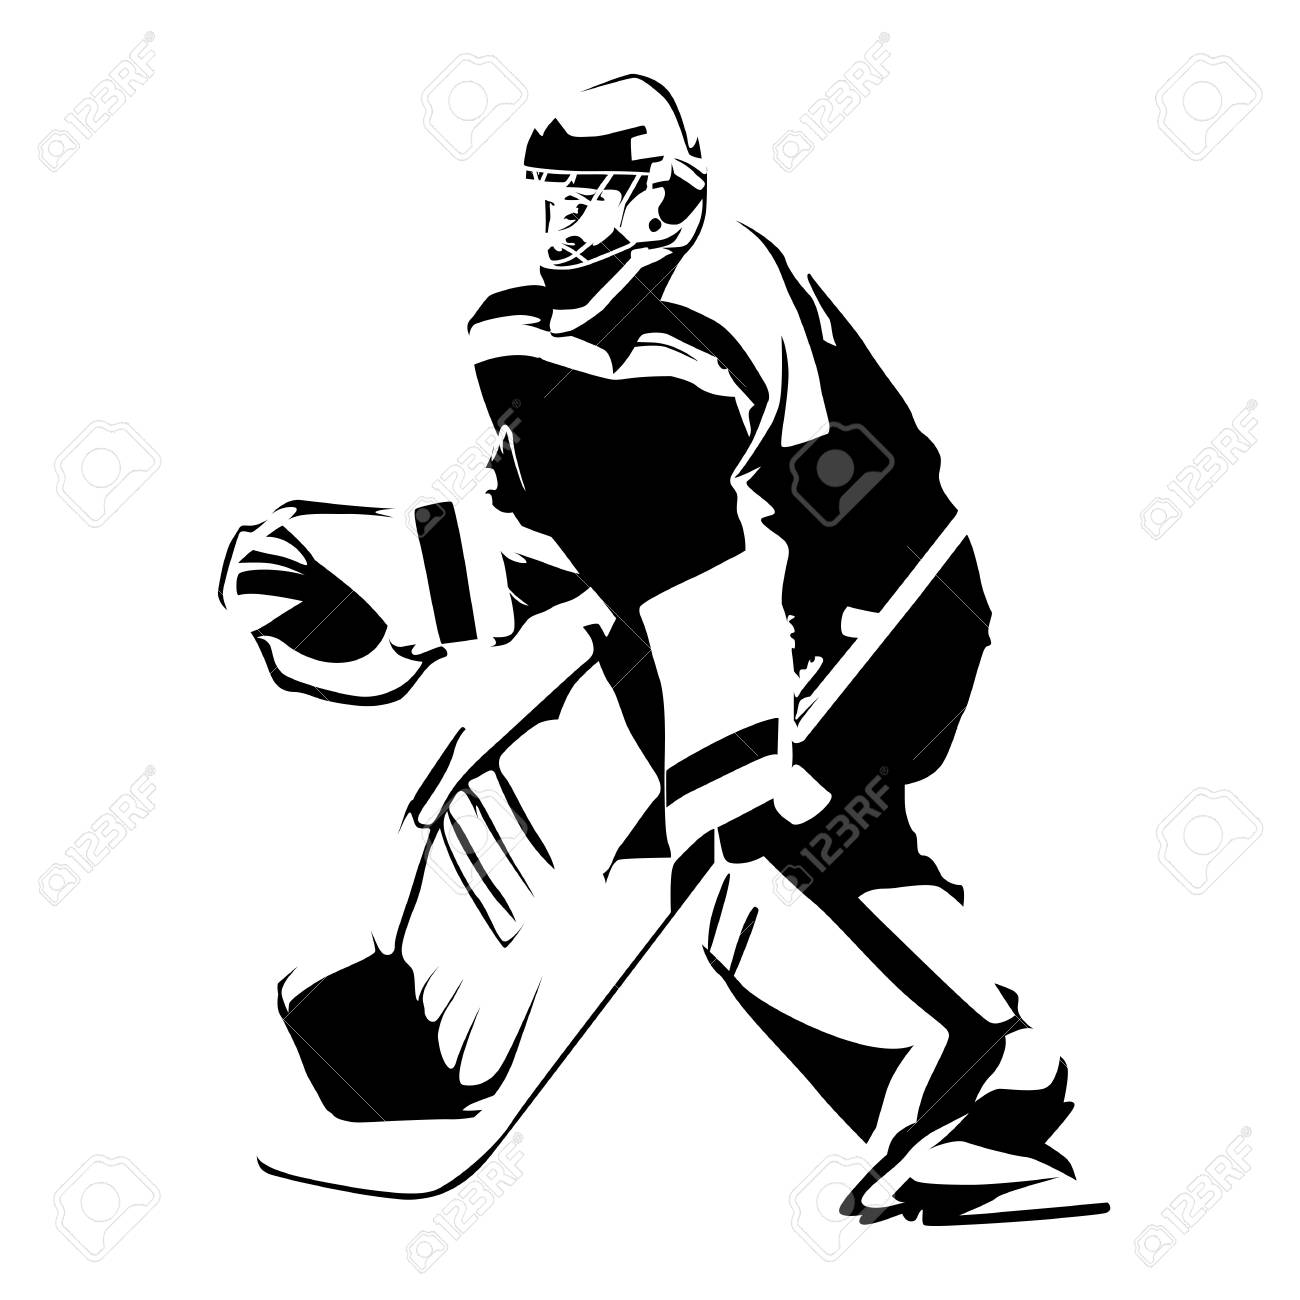 Ice Hockey Goalie Abstract Vector Silhouette Royalty Free Cliparts